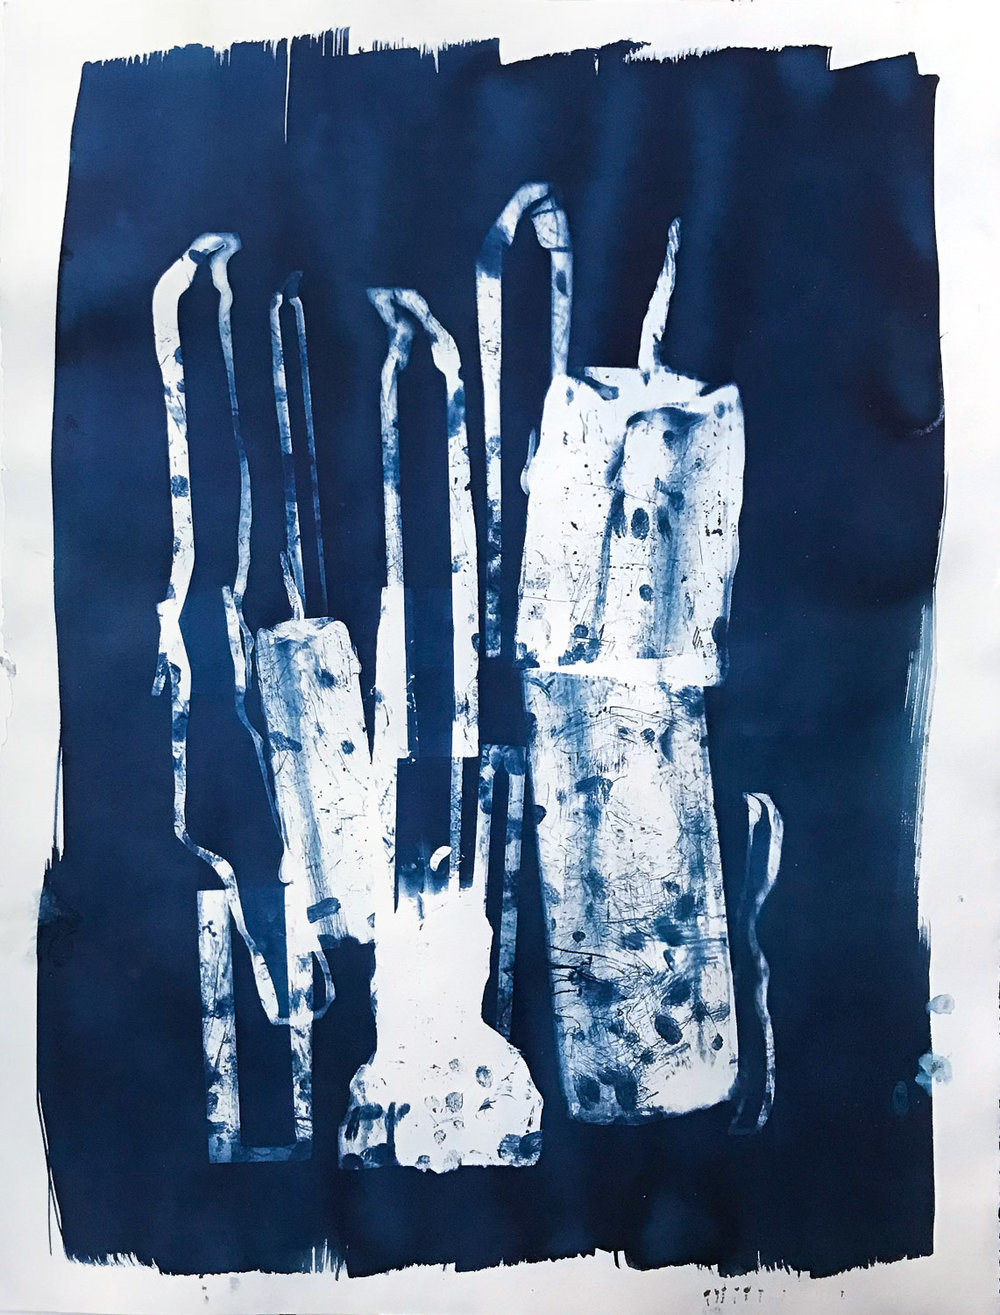 Cyanotype on paper with homemade negatives.